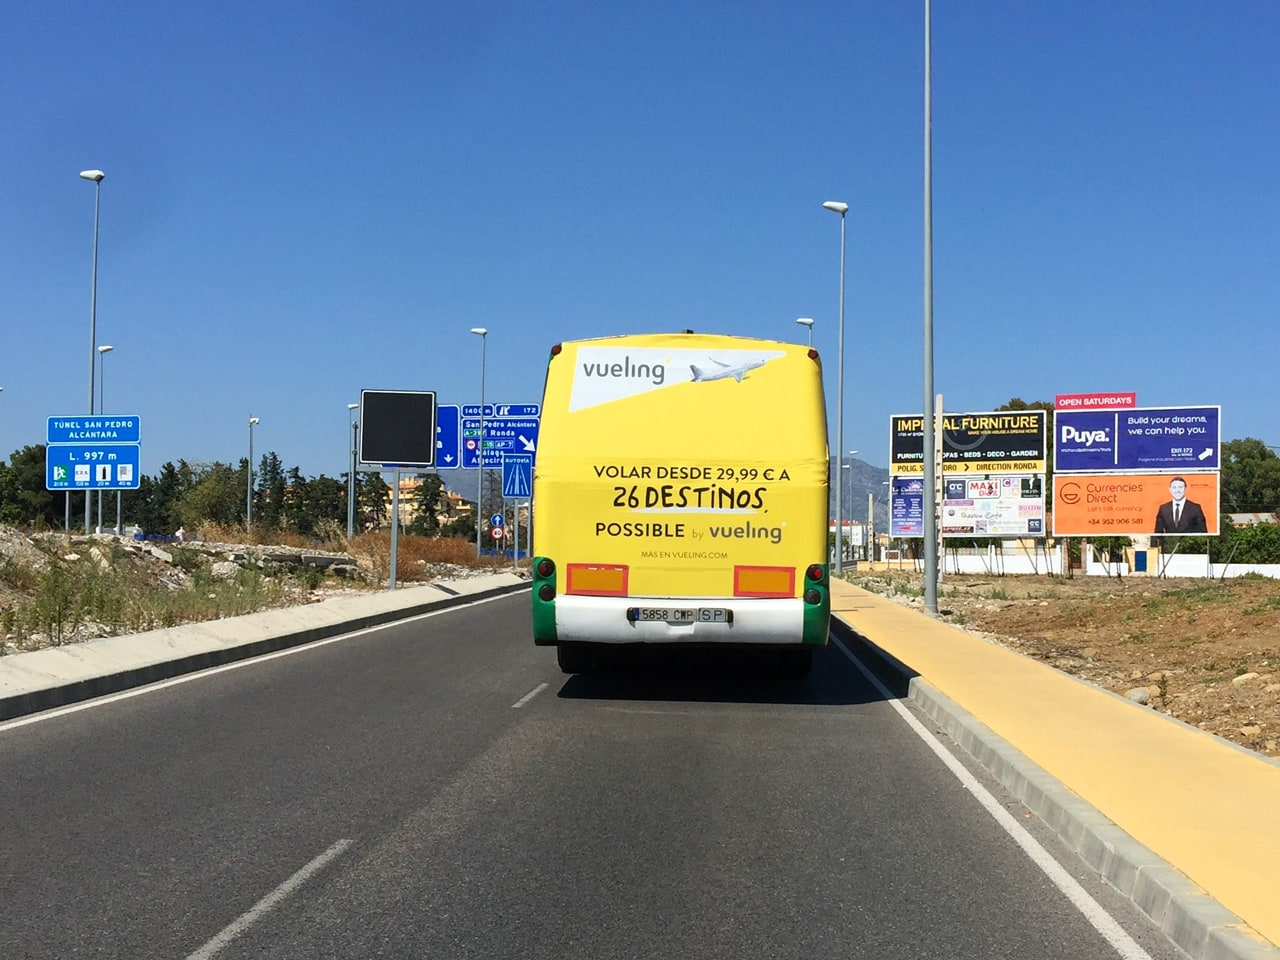 Bus advertising campaign in Marbella for Vueling